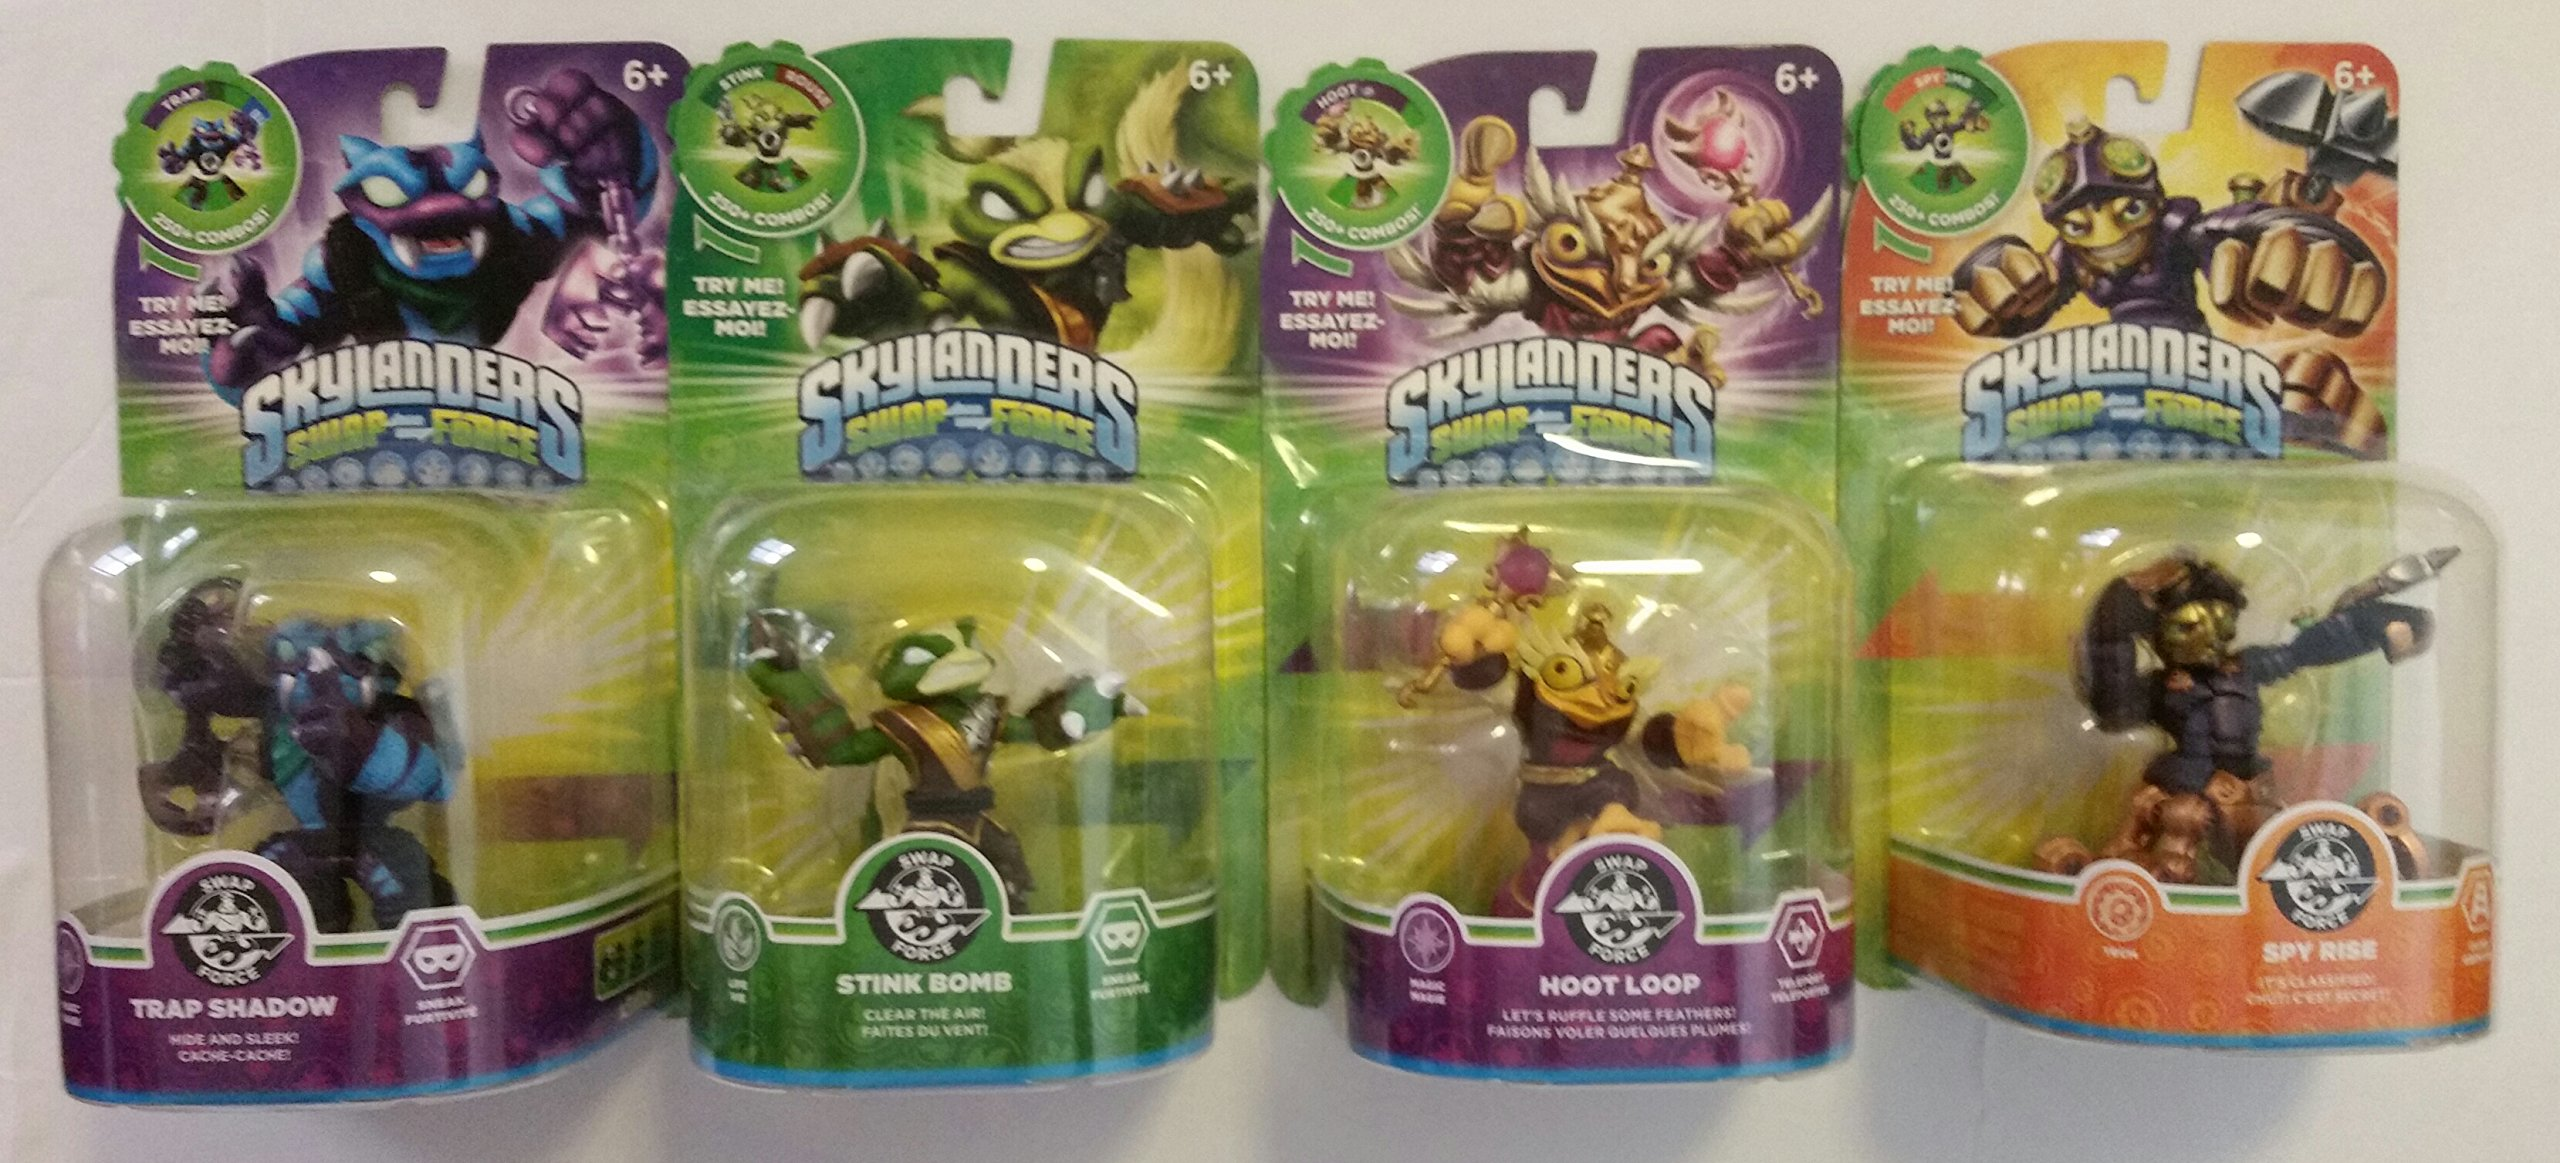 Skylanders Swap Force Action Figures (4) : Spy Rise , Hoot Loop , Stink Bomb , and Trap Shadow